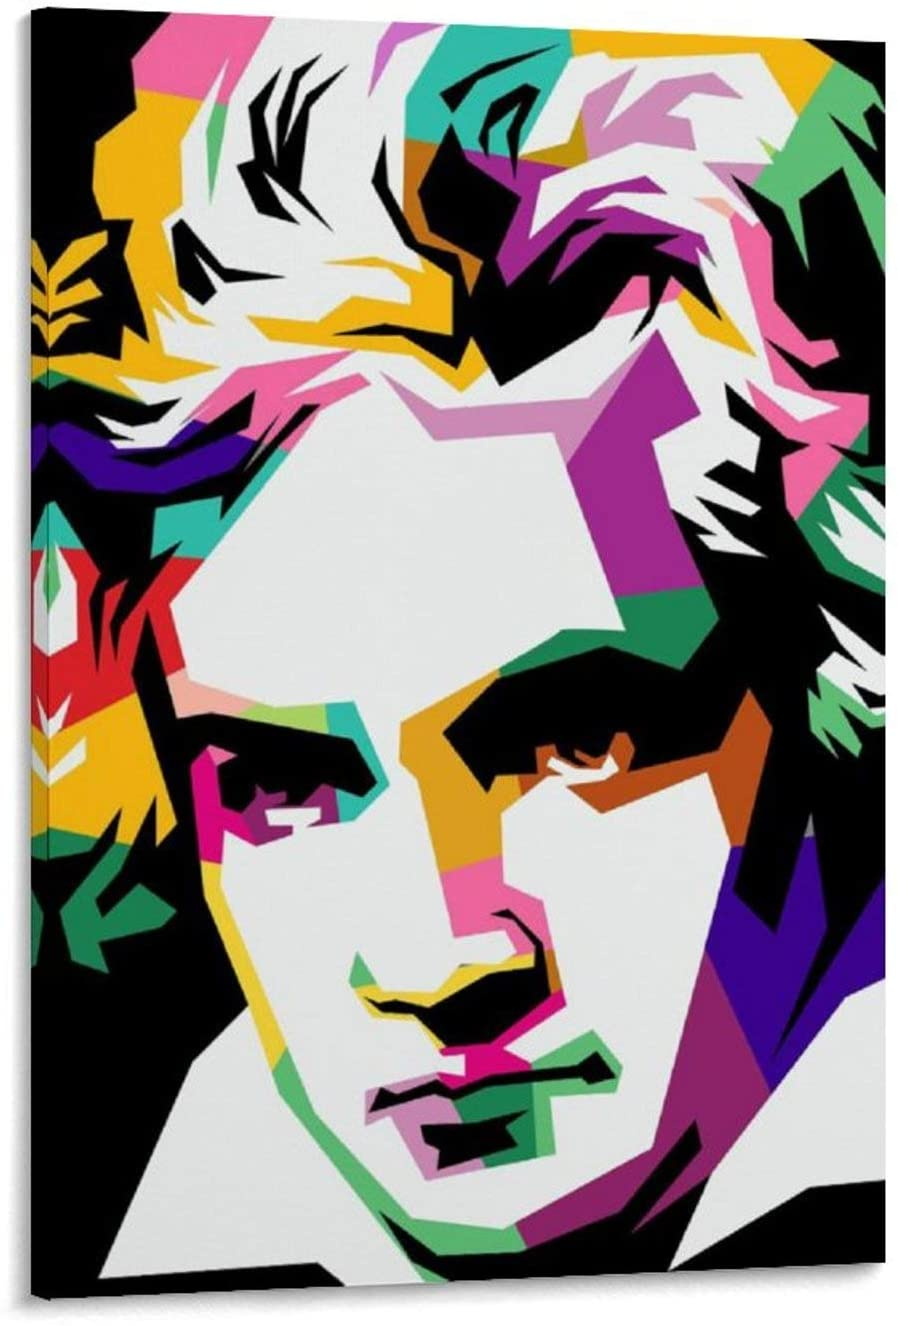 Jiandan Ludwig Van Beethoven Canvas Art Poster and Wall Art Picture Print Modern Family Bedroom Decor Posters 24x36inch(60x90cm)